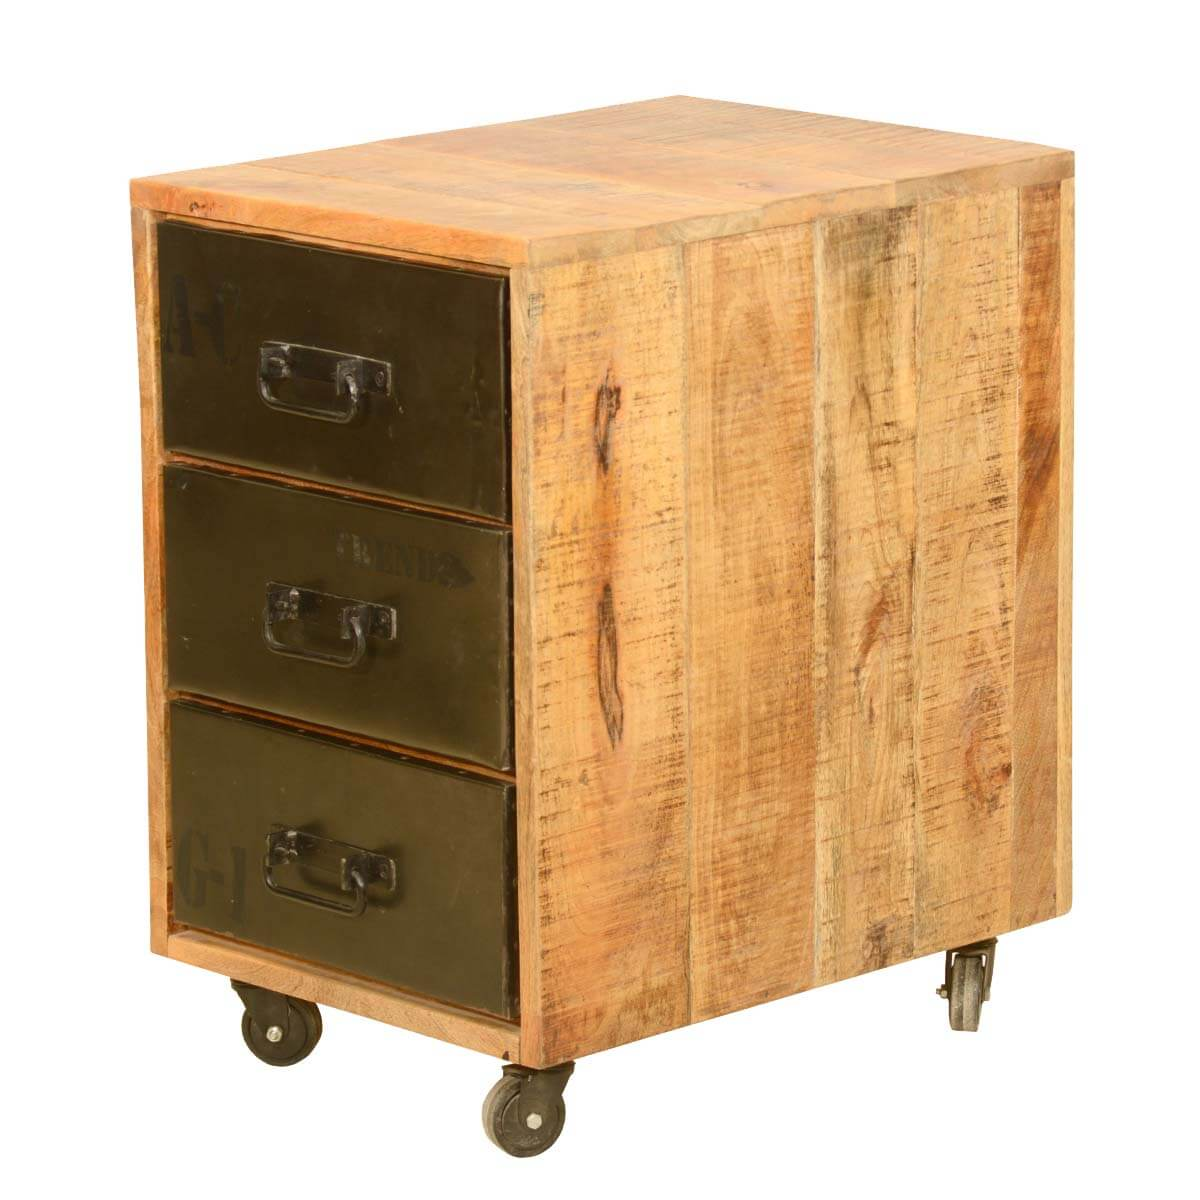 Industrial Look End Tables Rustic Industrial Style Solid Wood Trolley End Table With